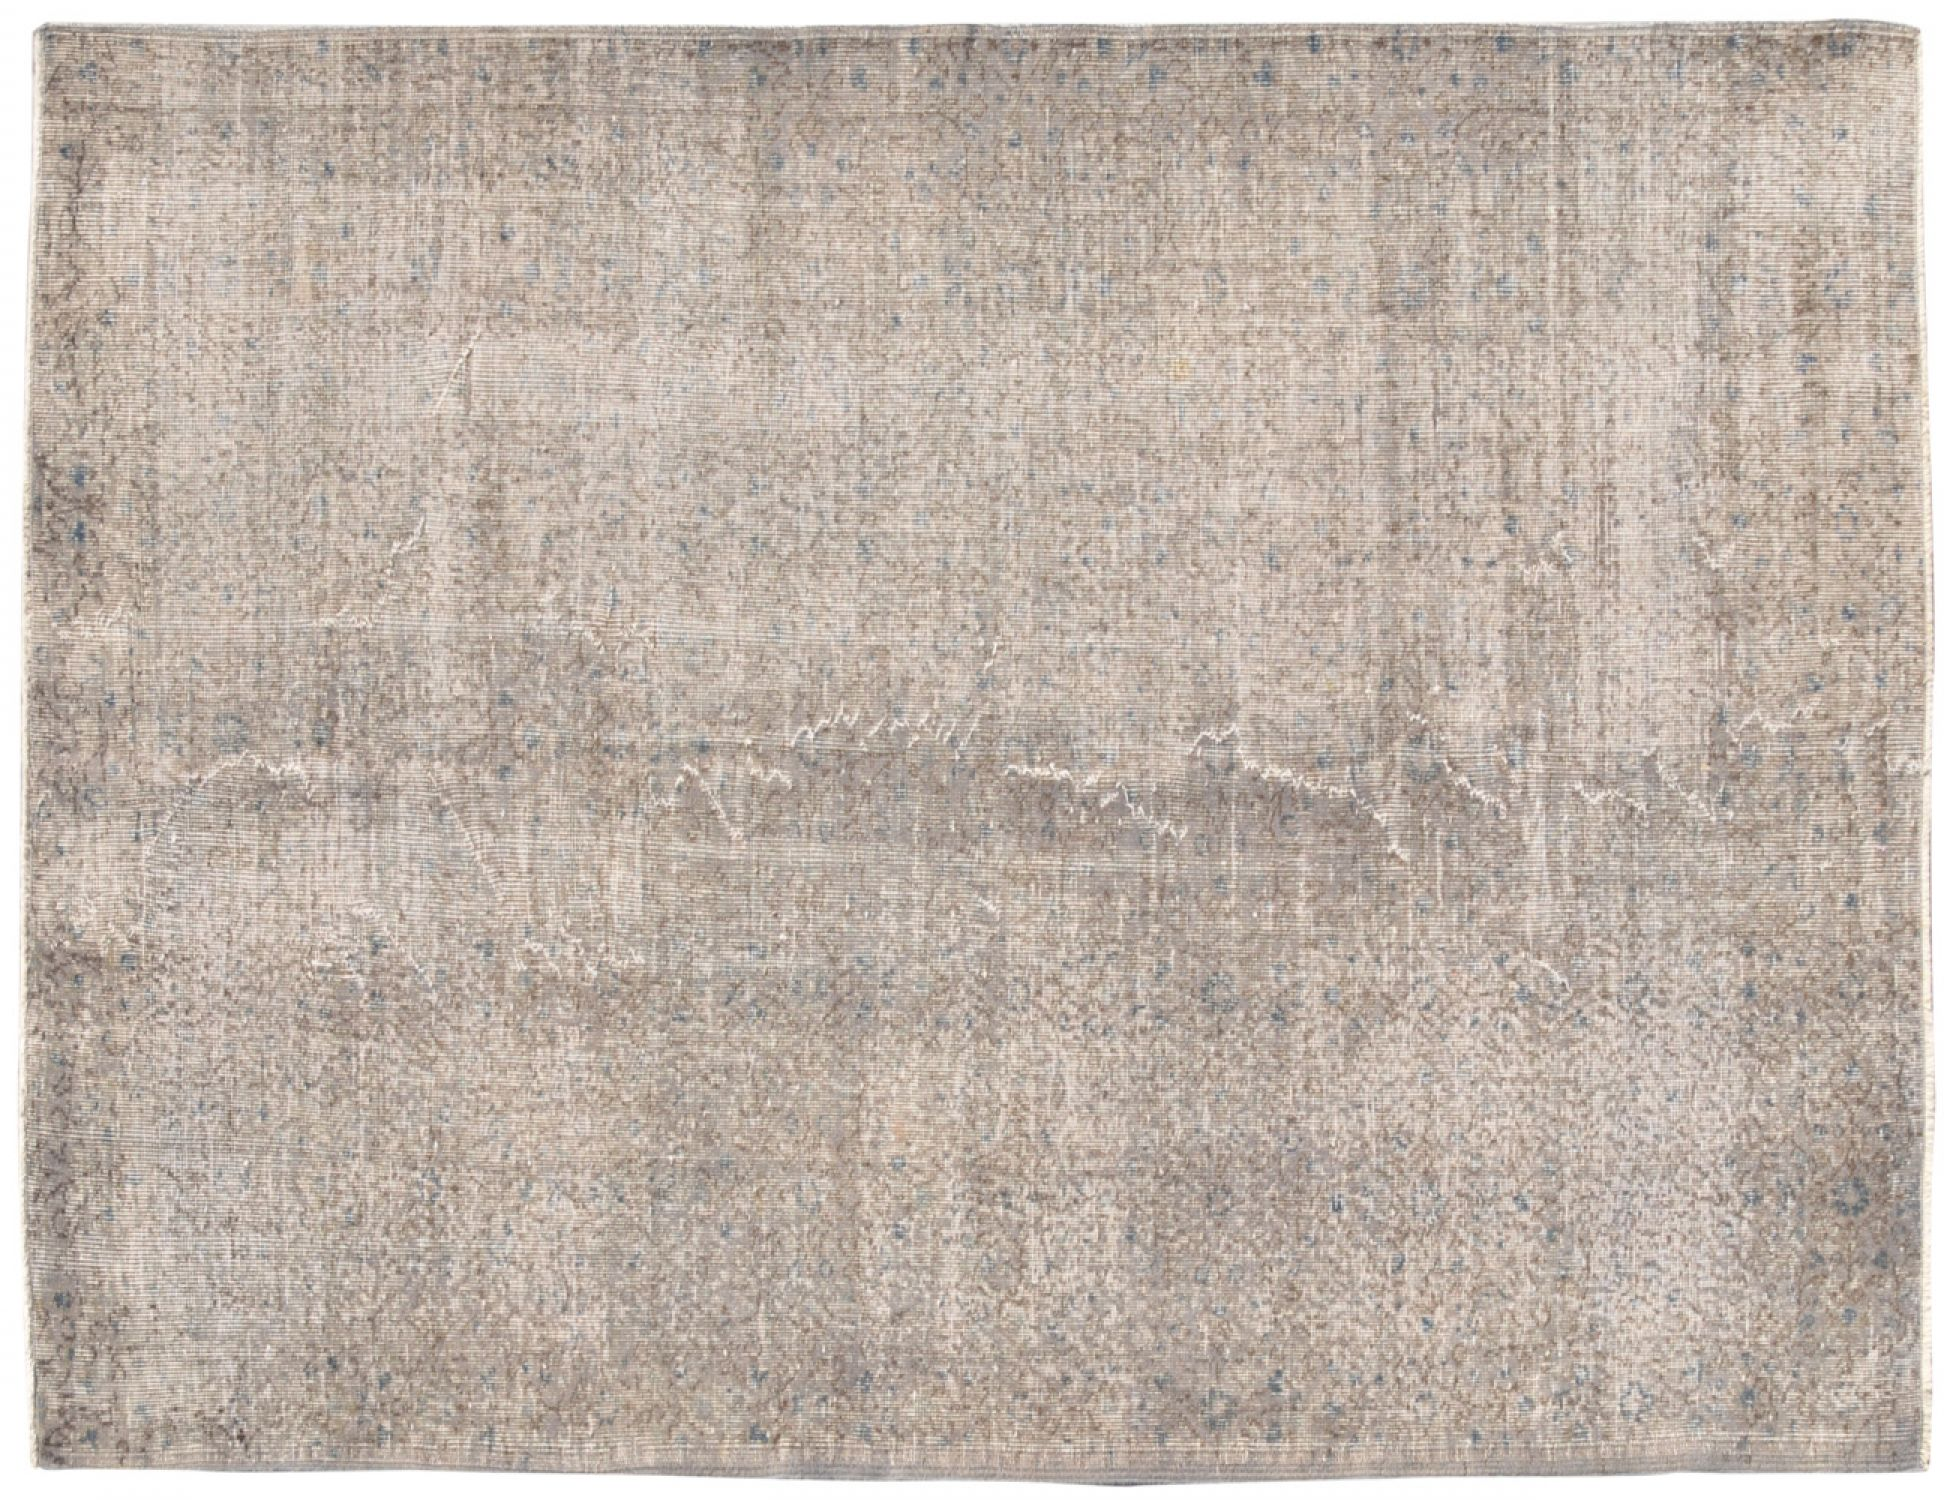 Vintage Carpet  grey <br/>261 x 162 cm